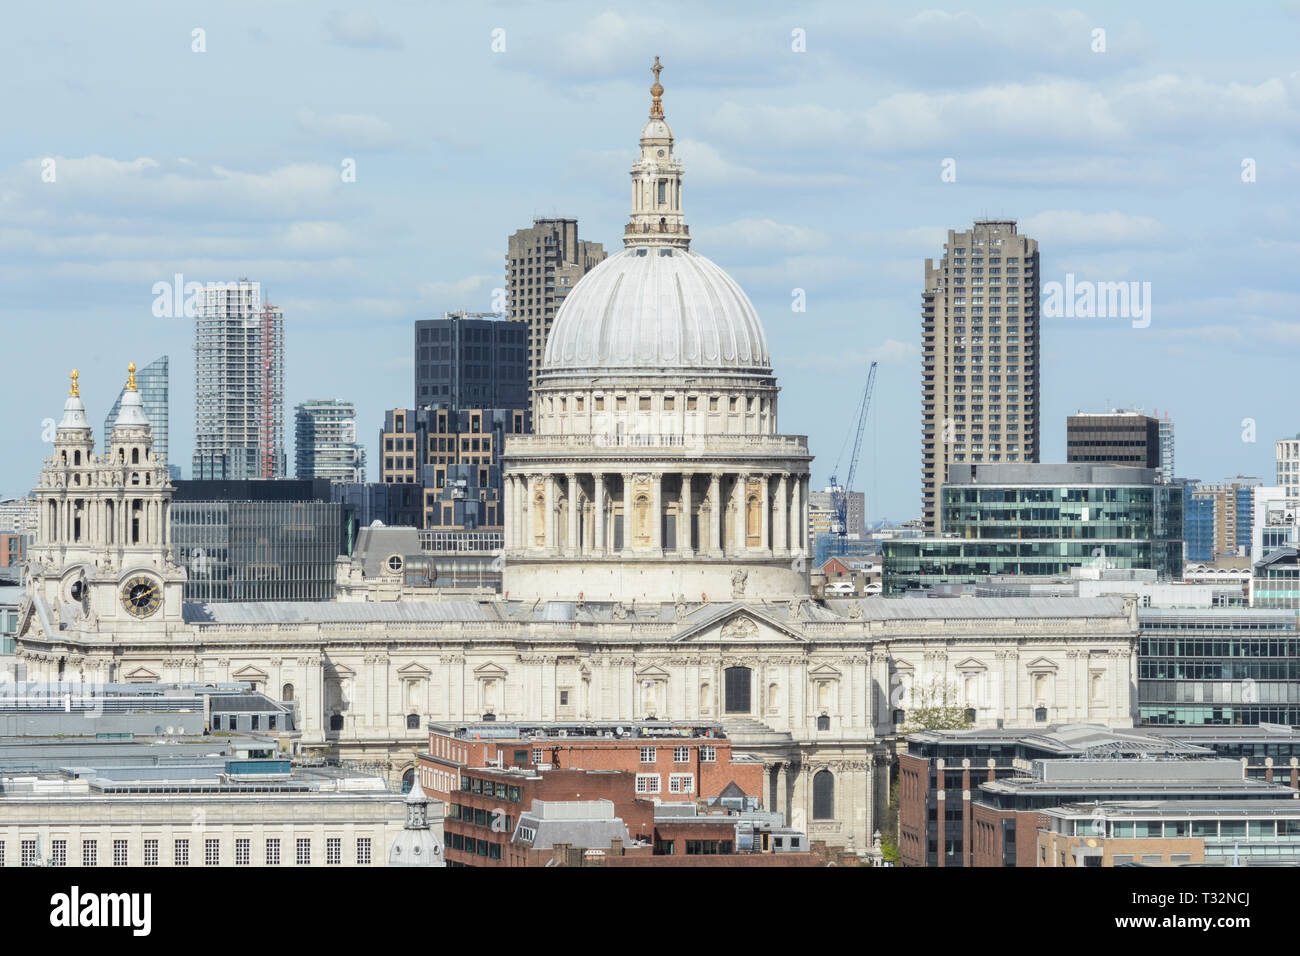 St Paul's Cathedral and the City of London skyline, London, UK - Stock Image